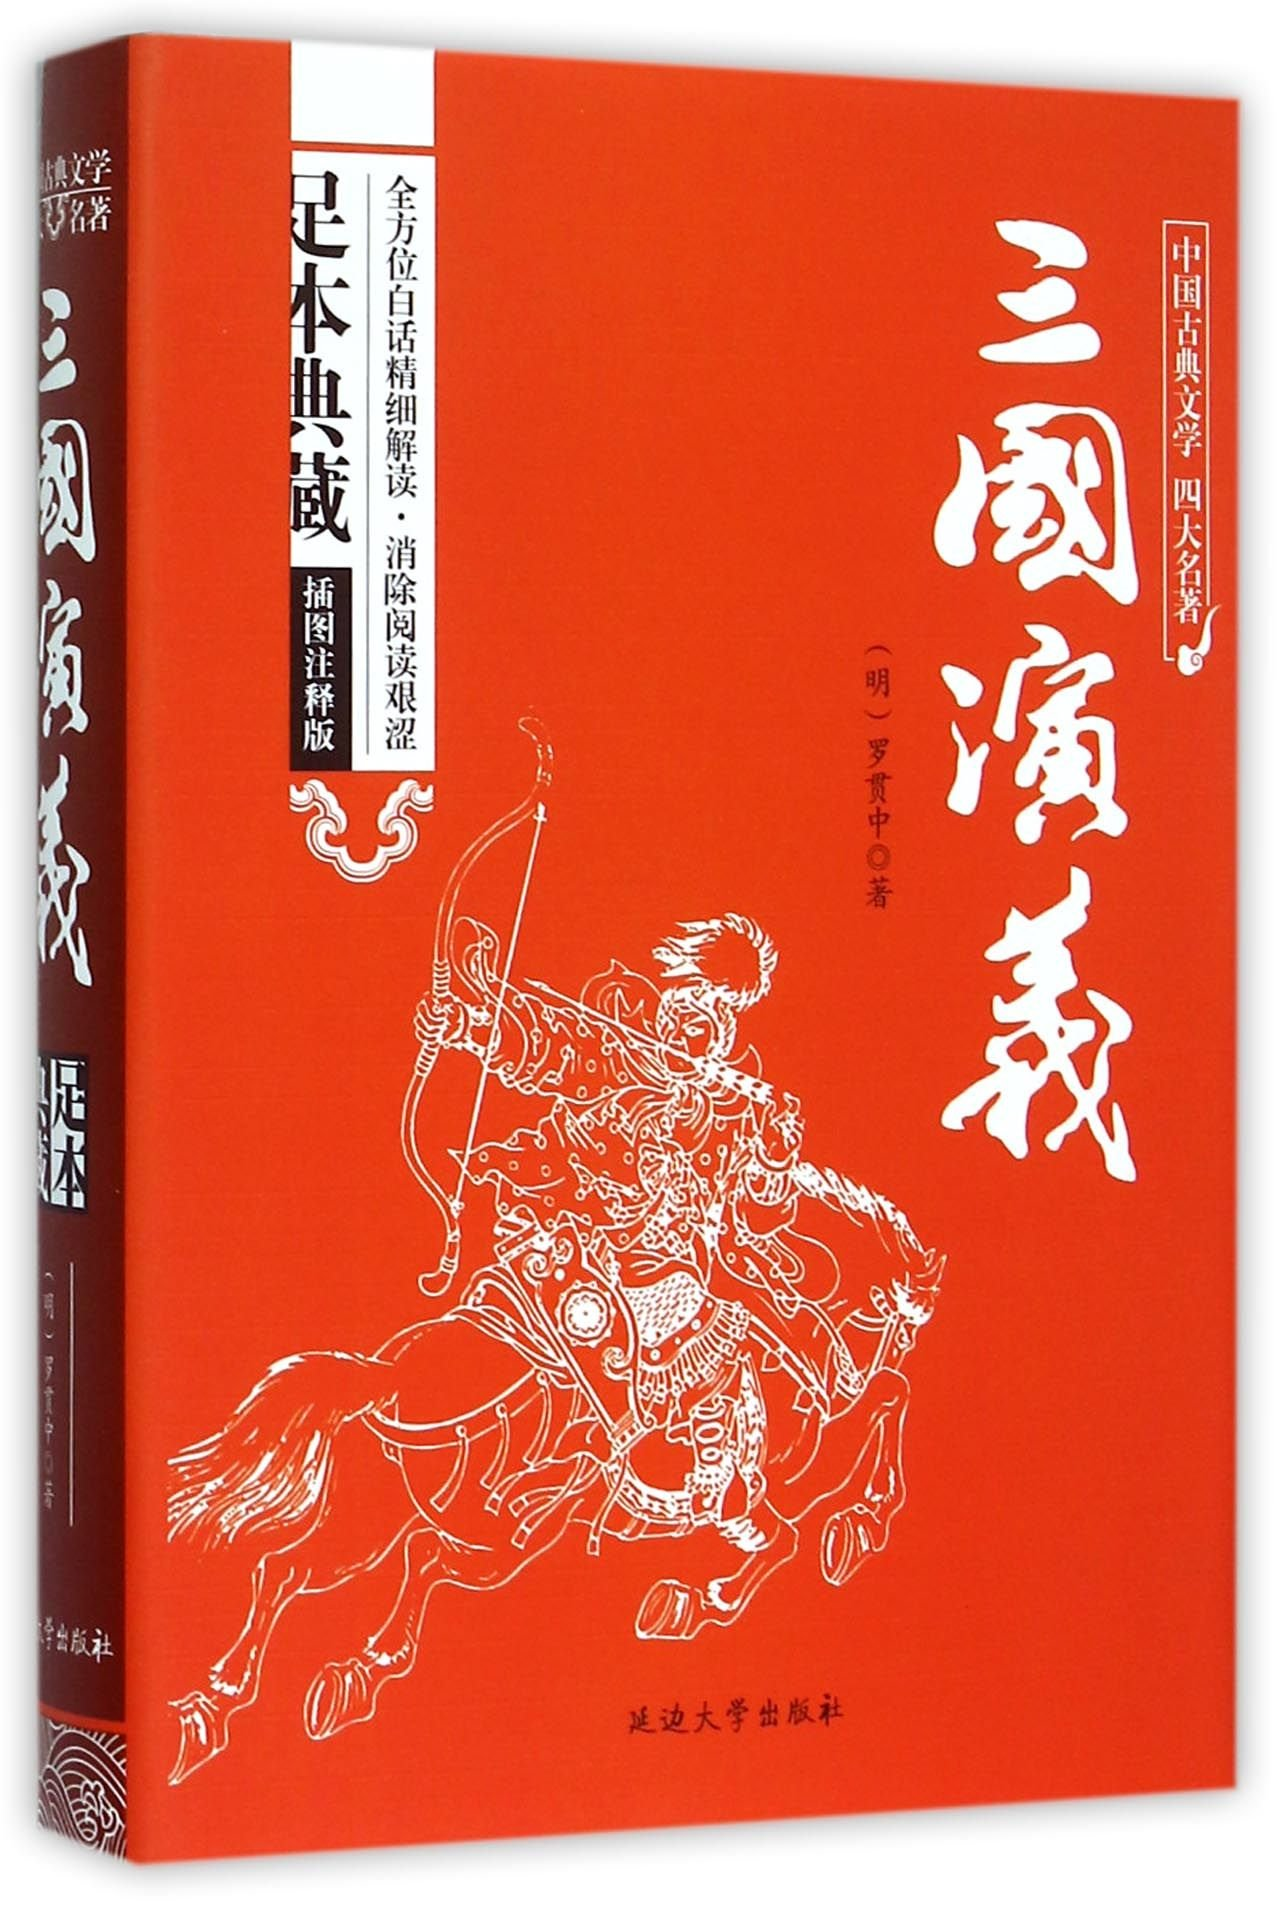 The Romance Of The Three Kingdoms ,Four Classics Of Chinese Classical Literature (Chinese Edition)